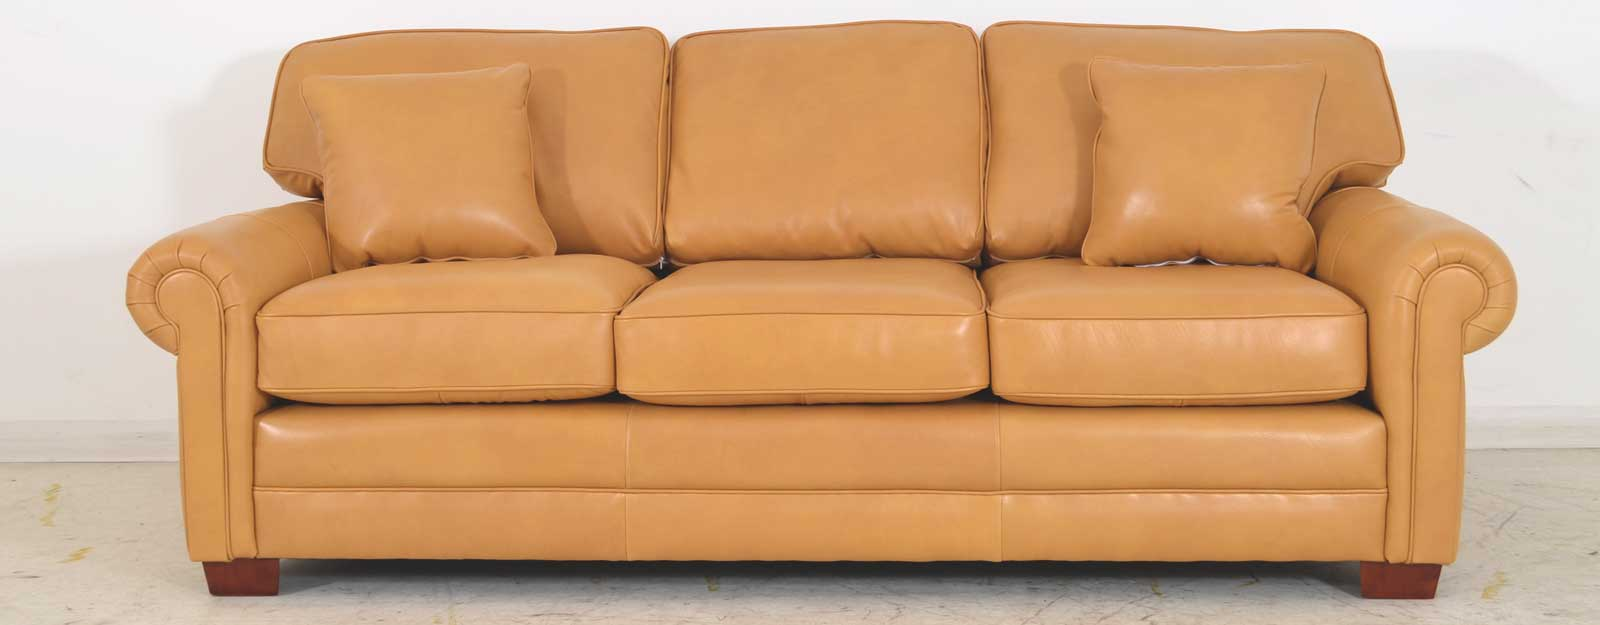 Lancaster Sofa With Cushions